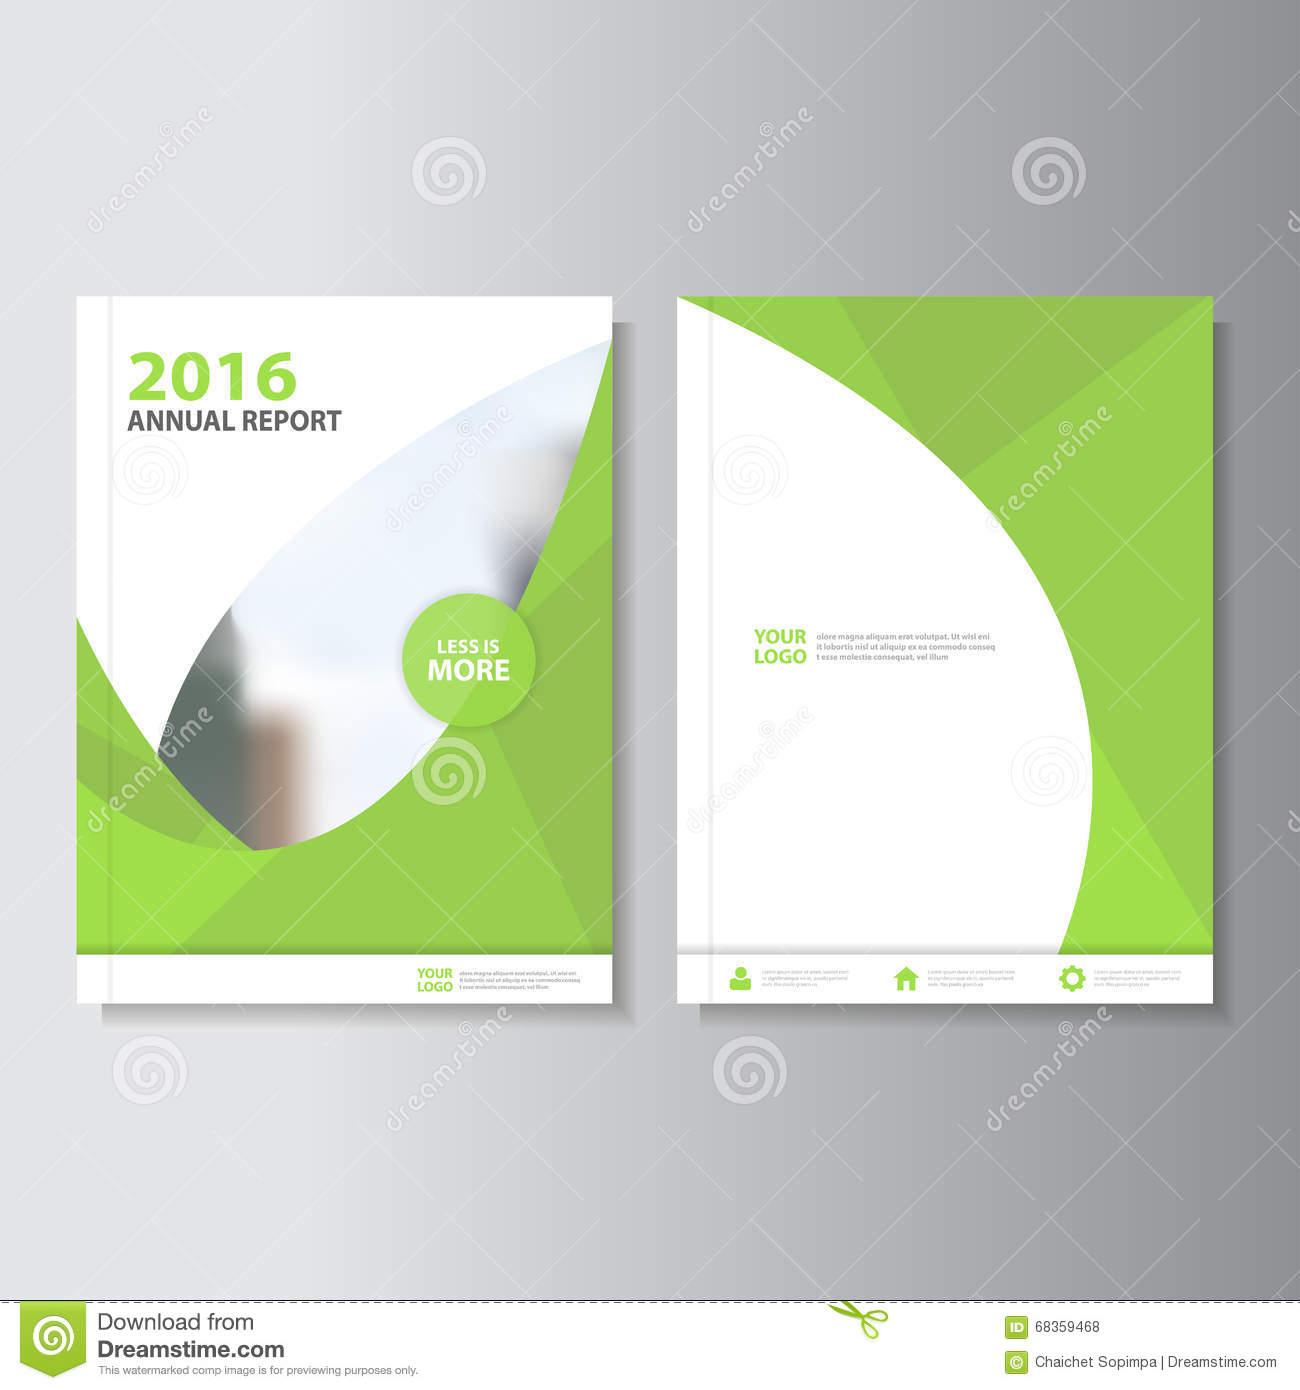 abstract green vector annual report poster leaflet brochure flyer eco green vector annual report leaflet brochure flyer template design book cover layout design